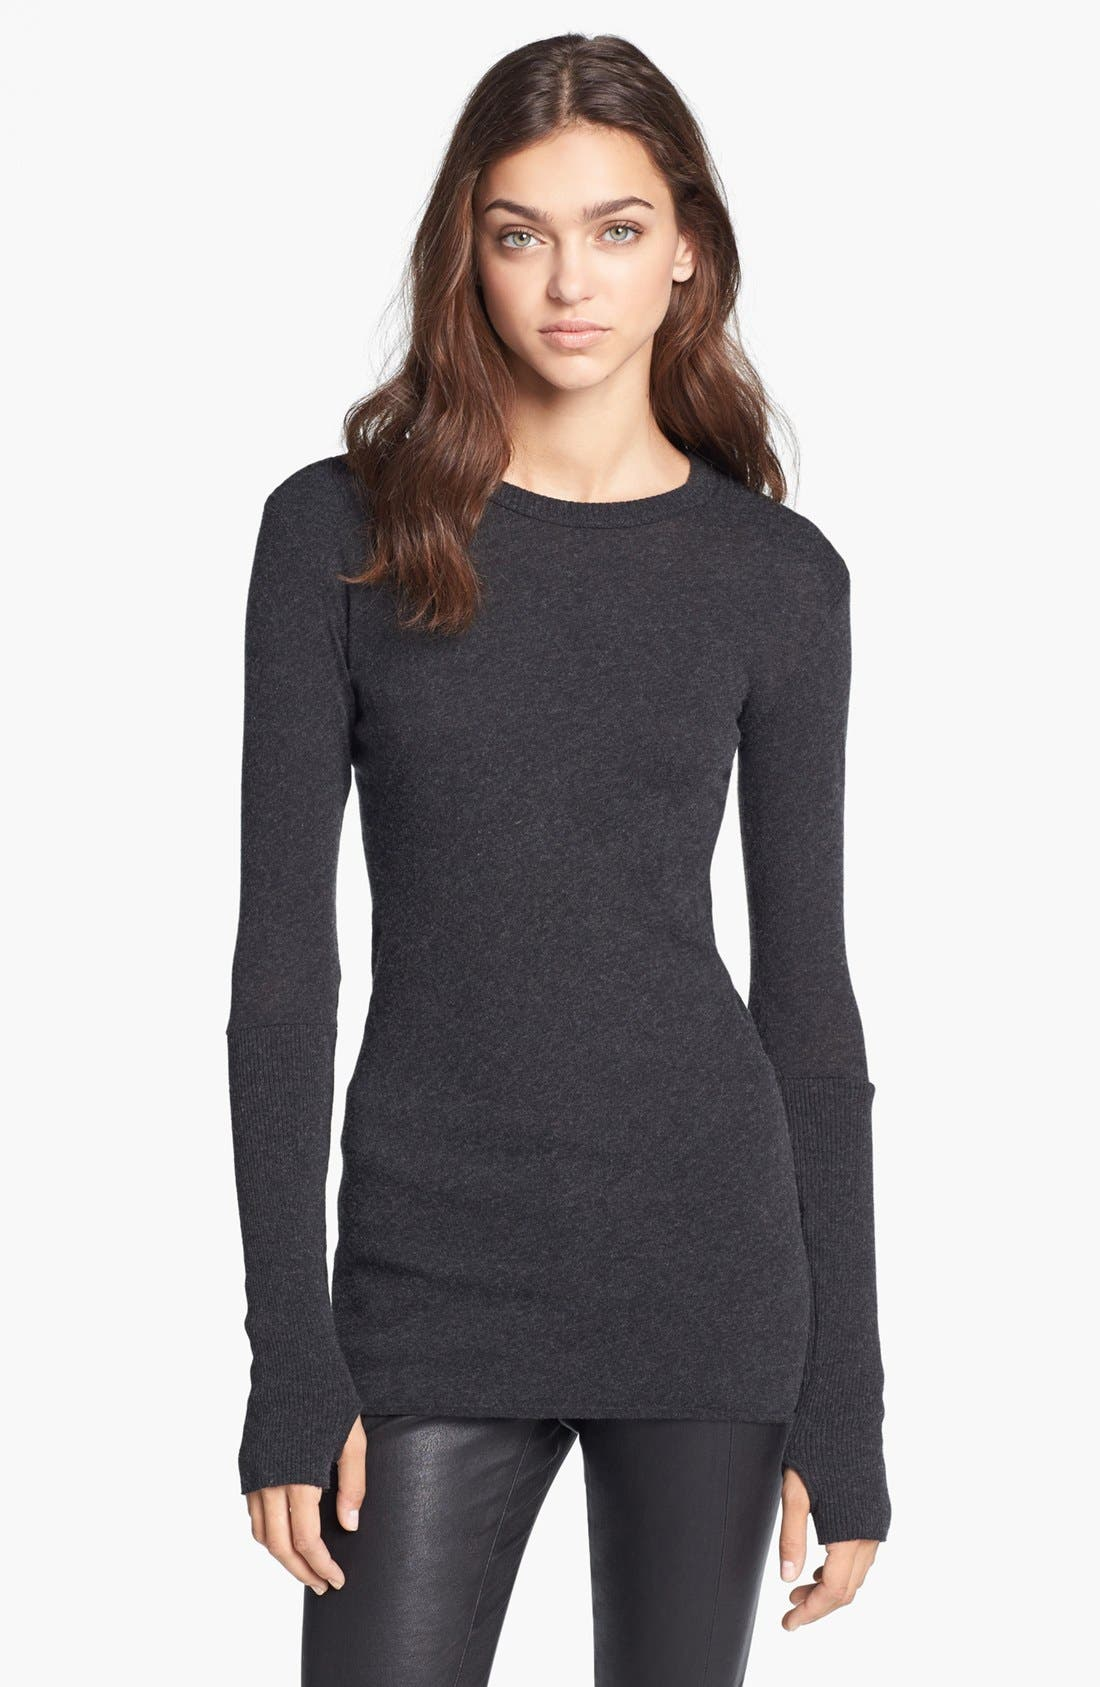 Main Image - Enza Costa Cotton & Cashmere Jersey Sweater